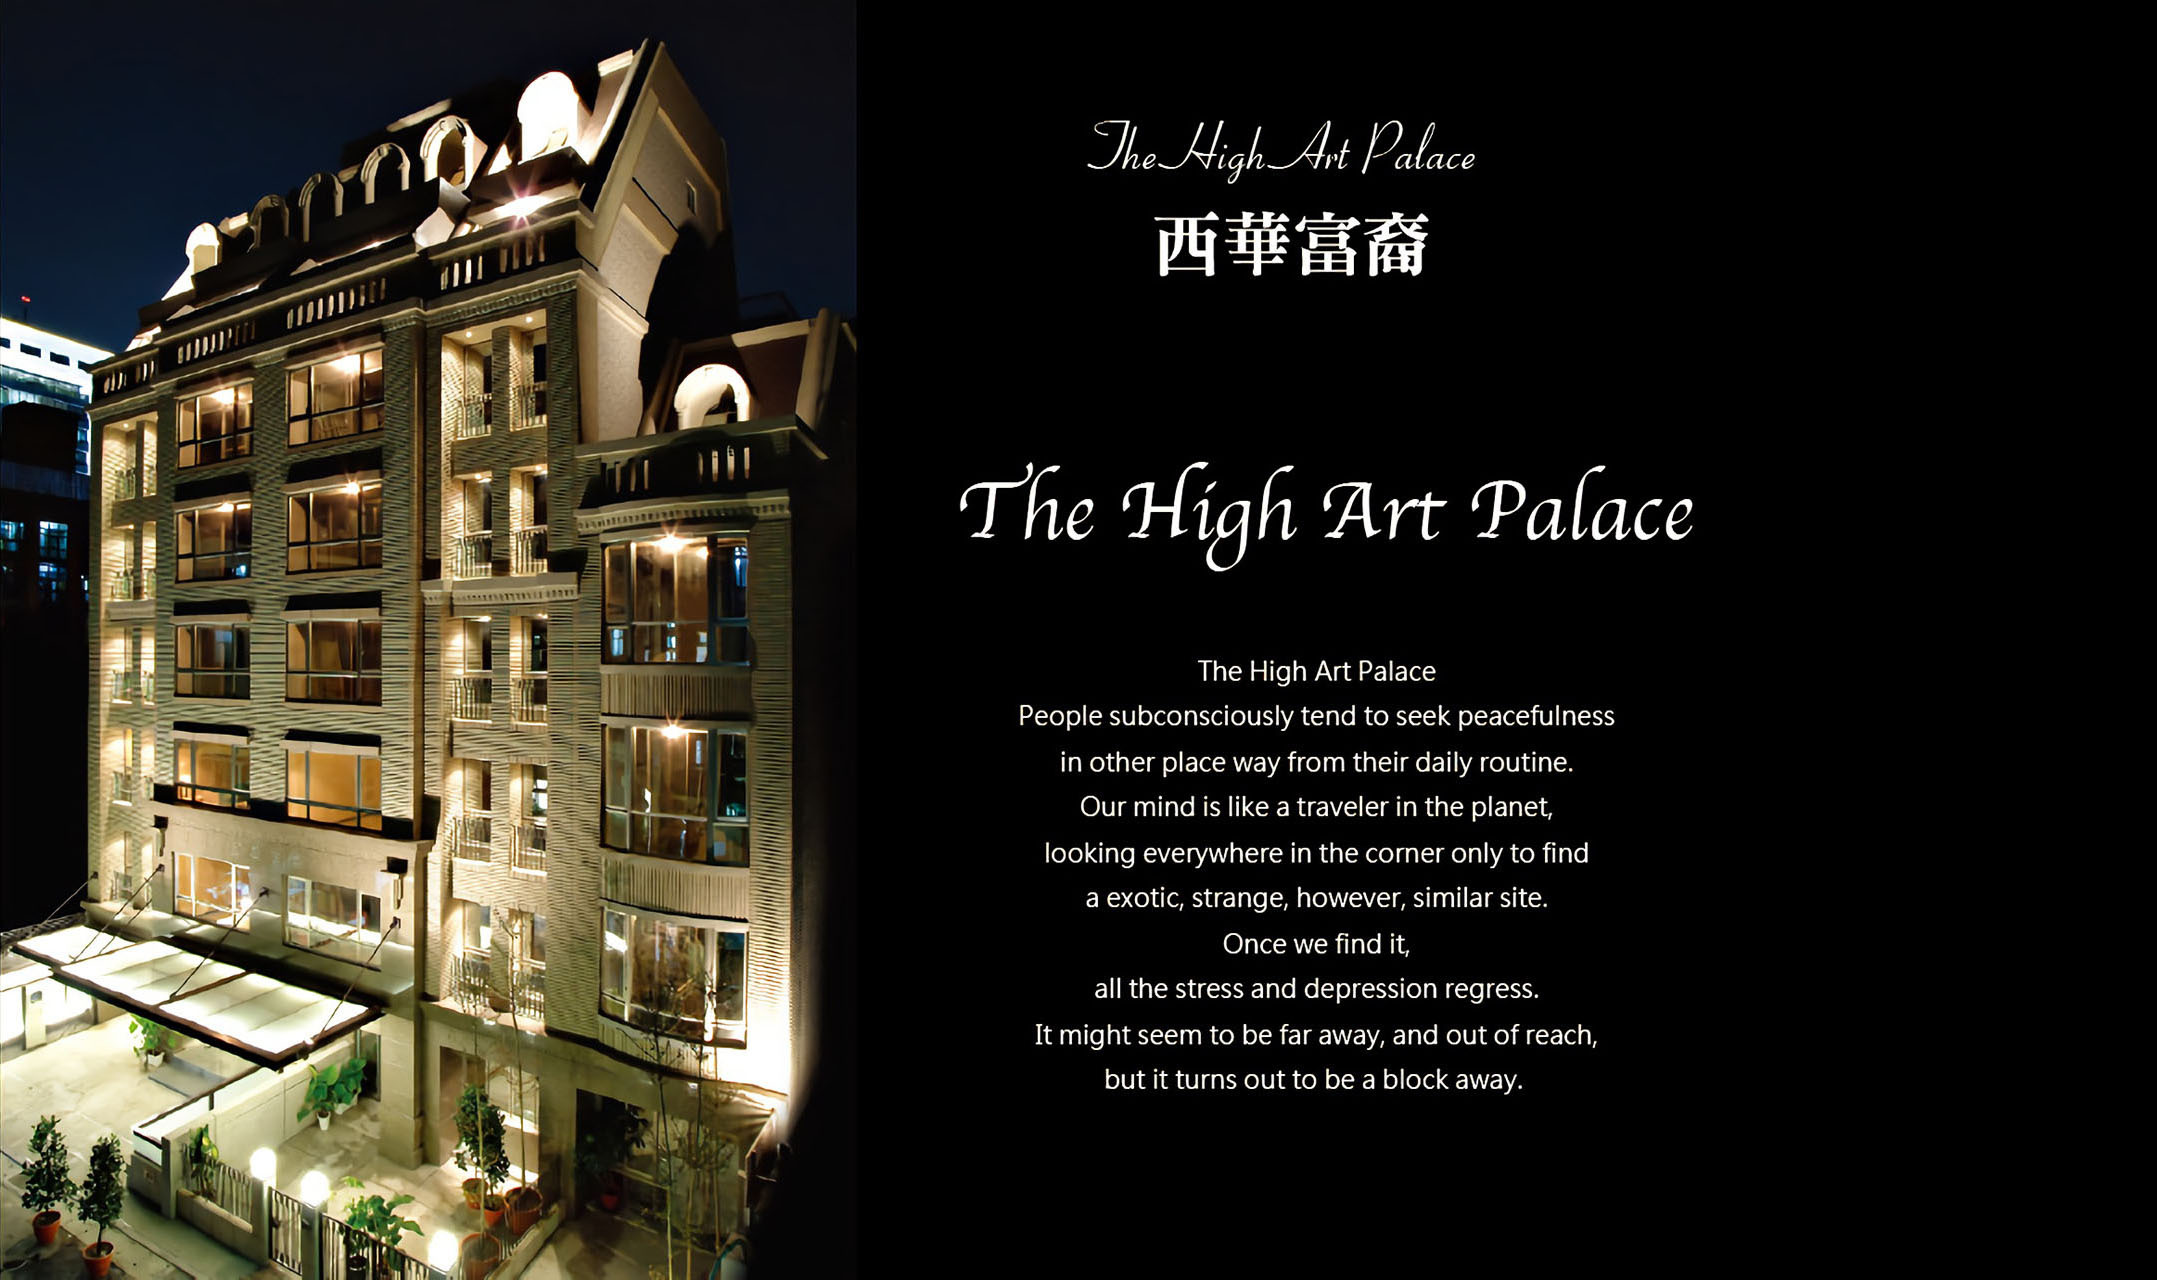 The High Art Palace